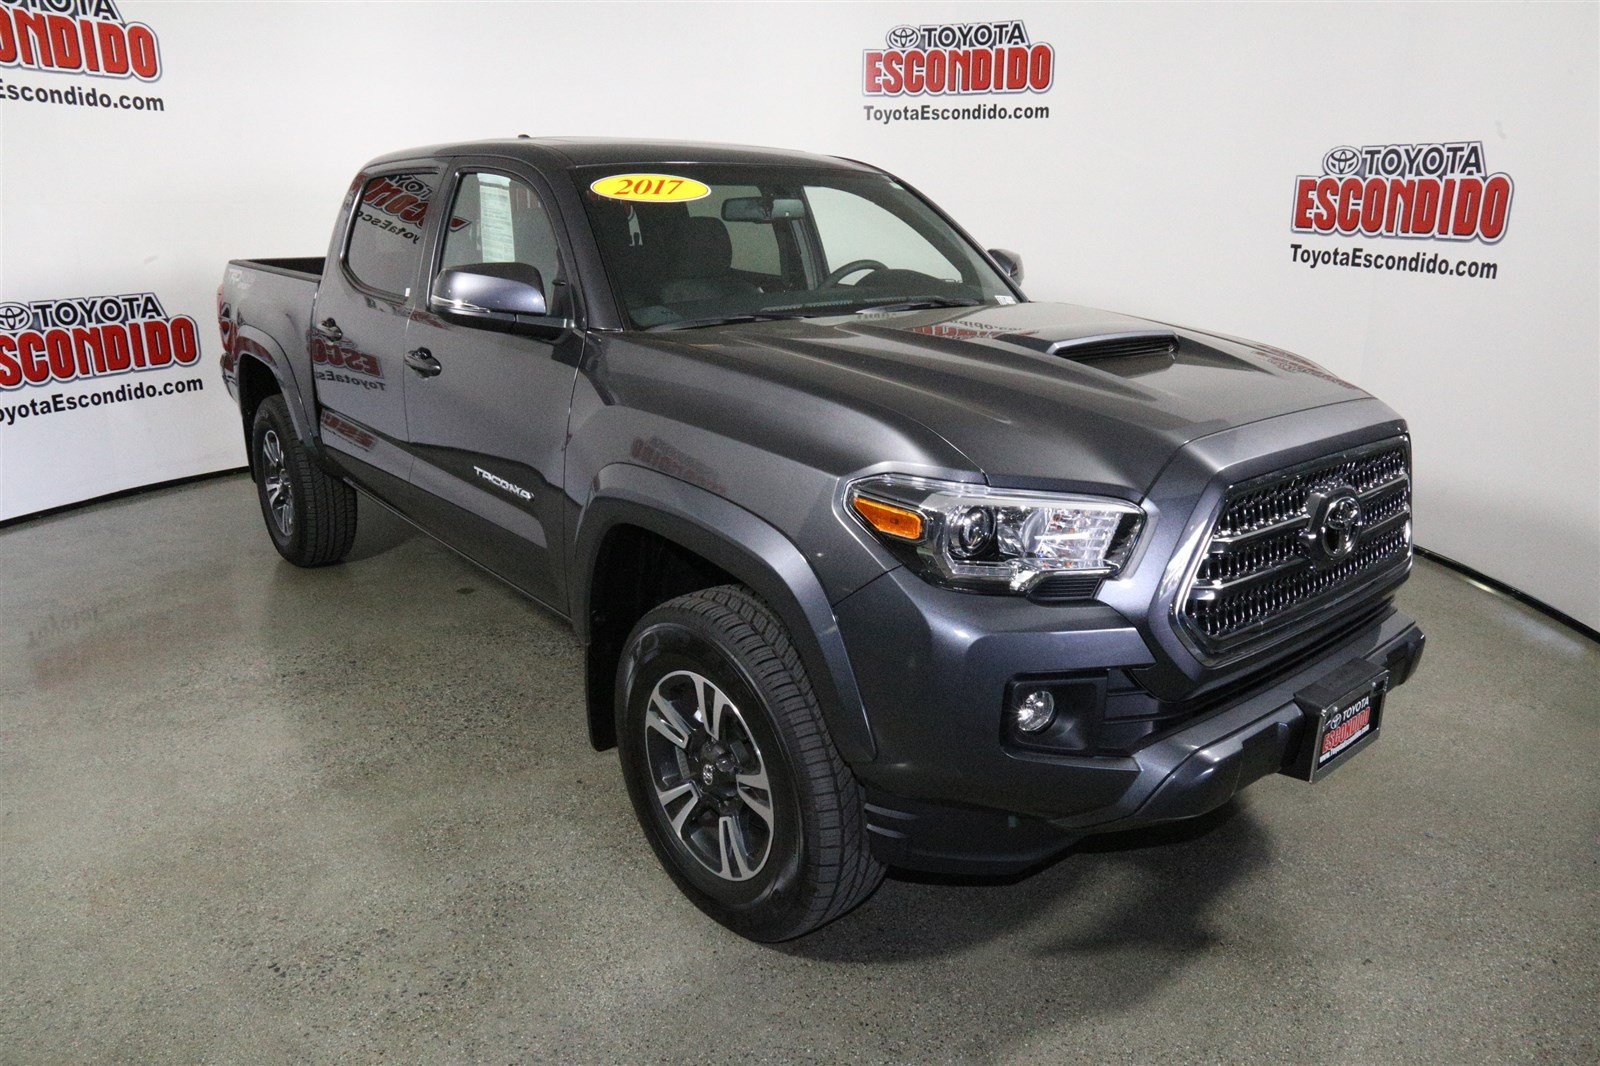 new 2017 toyota tacoma trd sport double cab pickup in escondido 1014806 toyota escondido. Black Bedroom Furniture Sets. Home Design Ideas